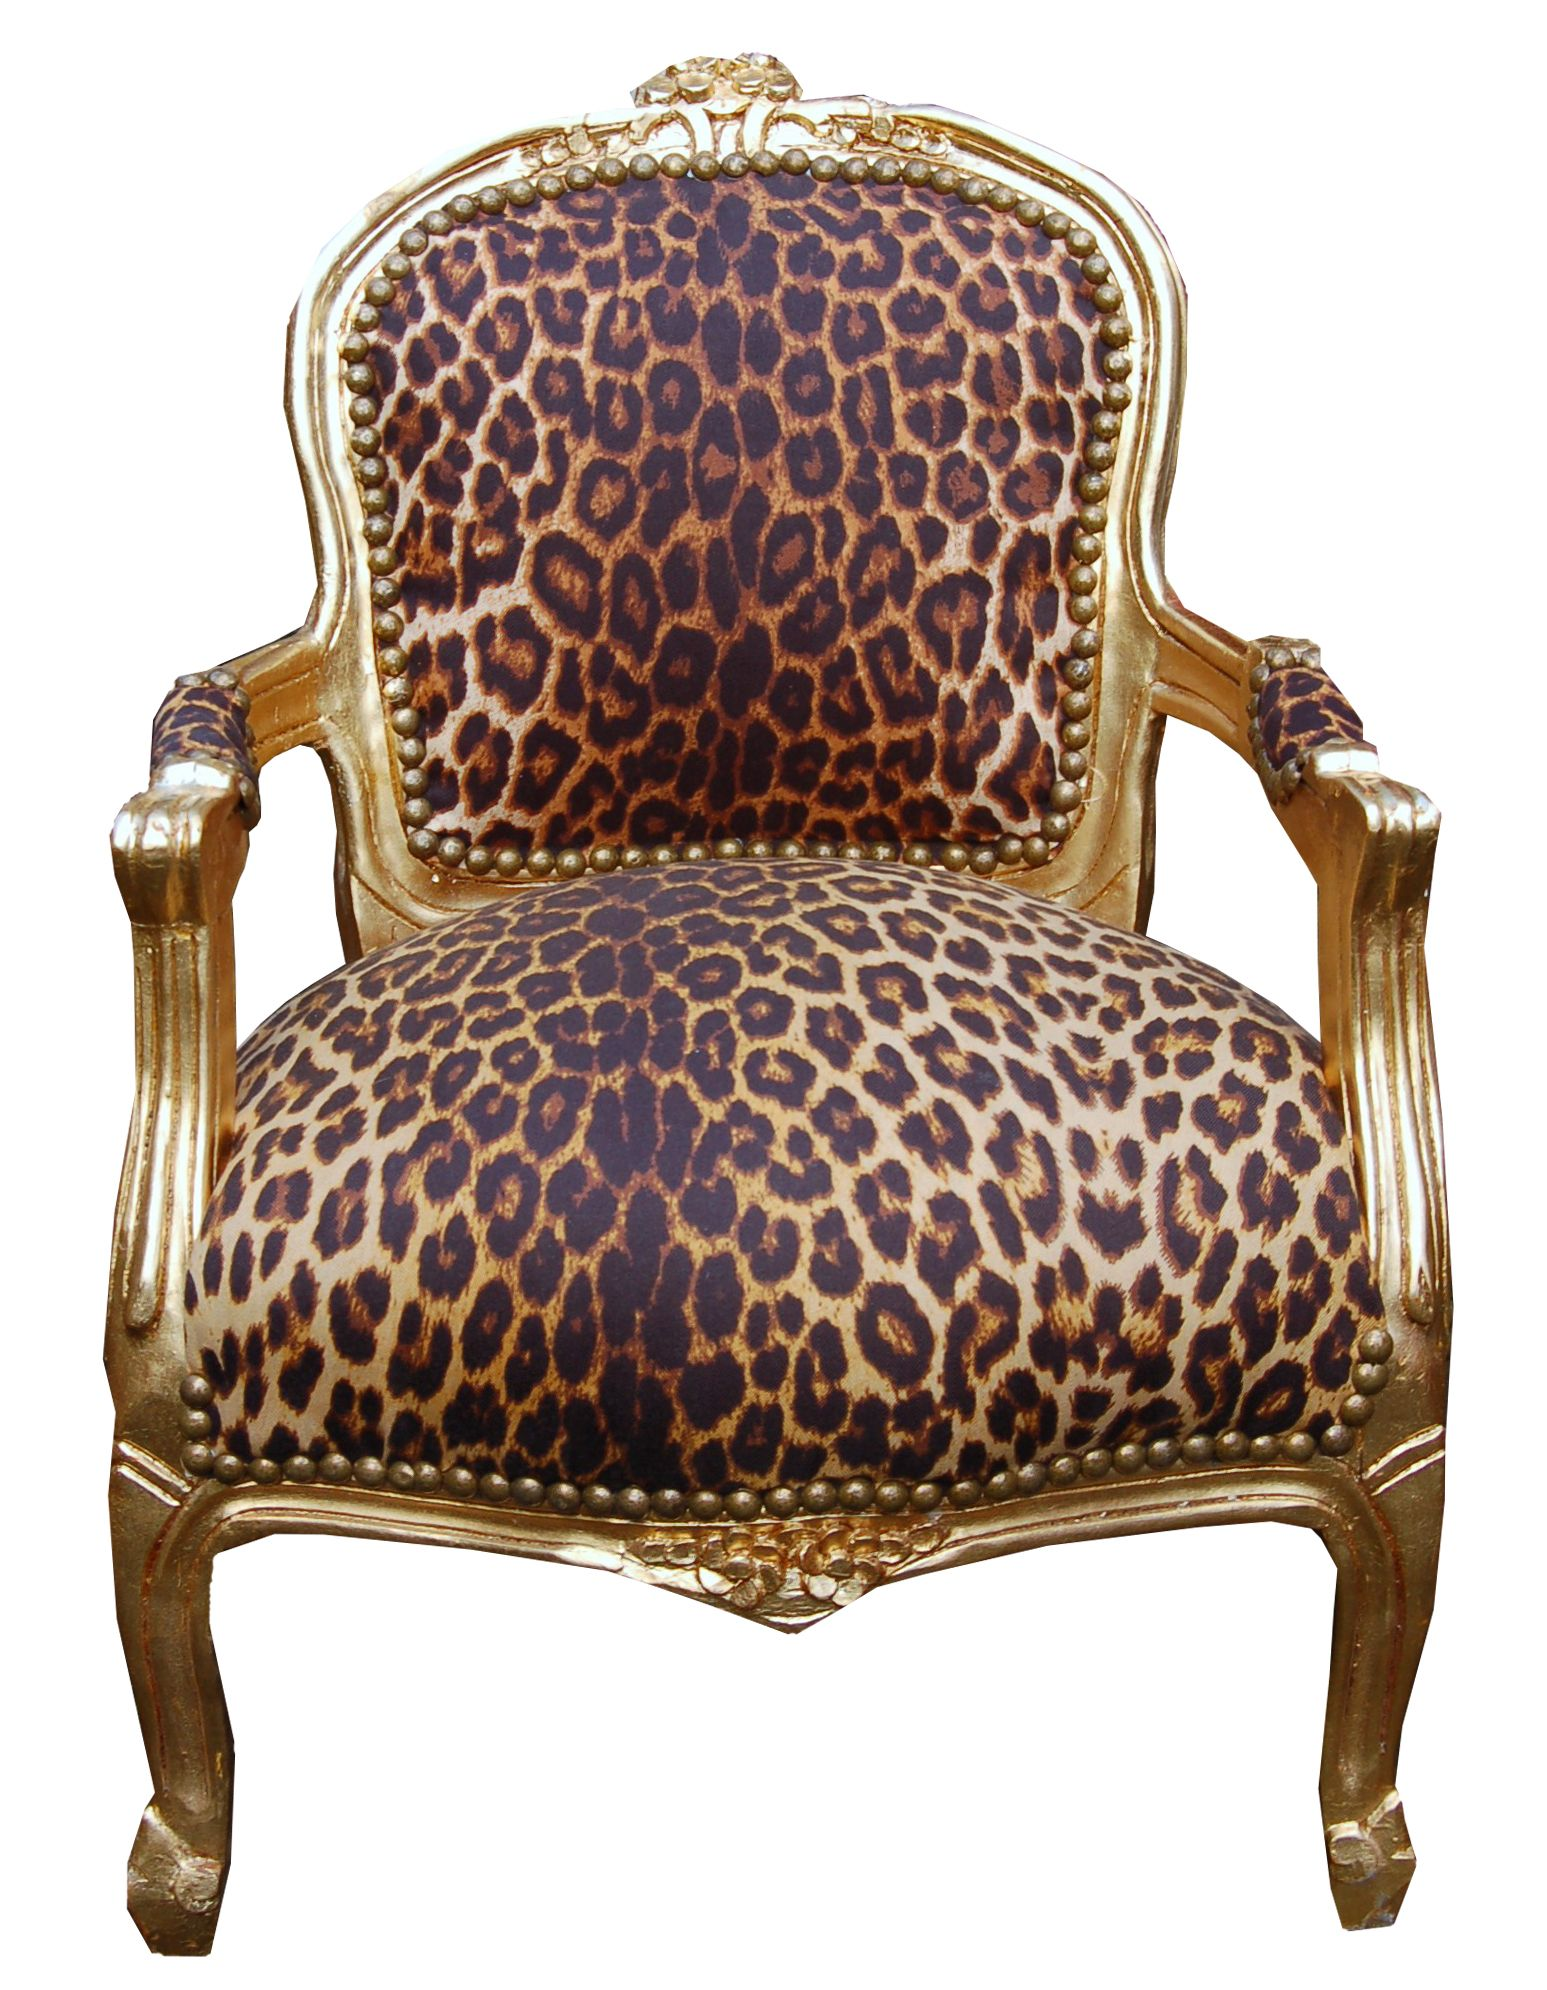 leopard print sofa appears big comfy beds amazing children 39s armchair antique styling clashed with